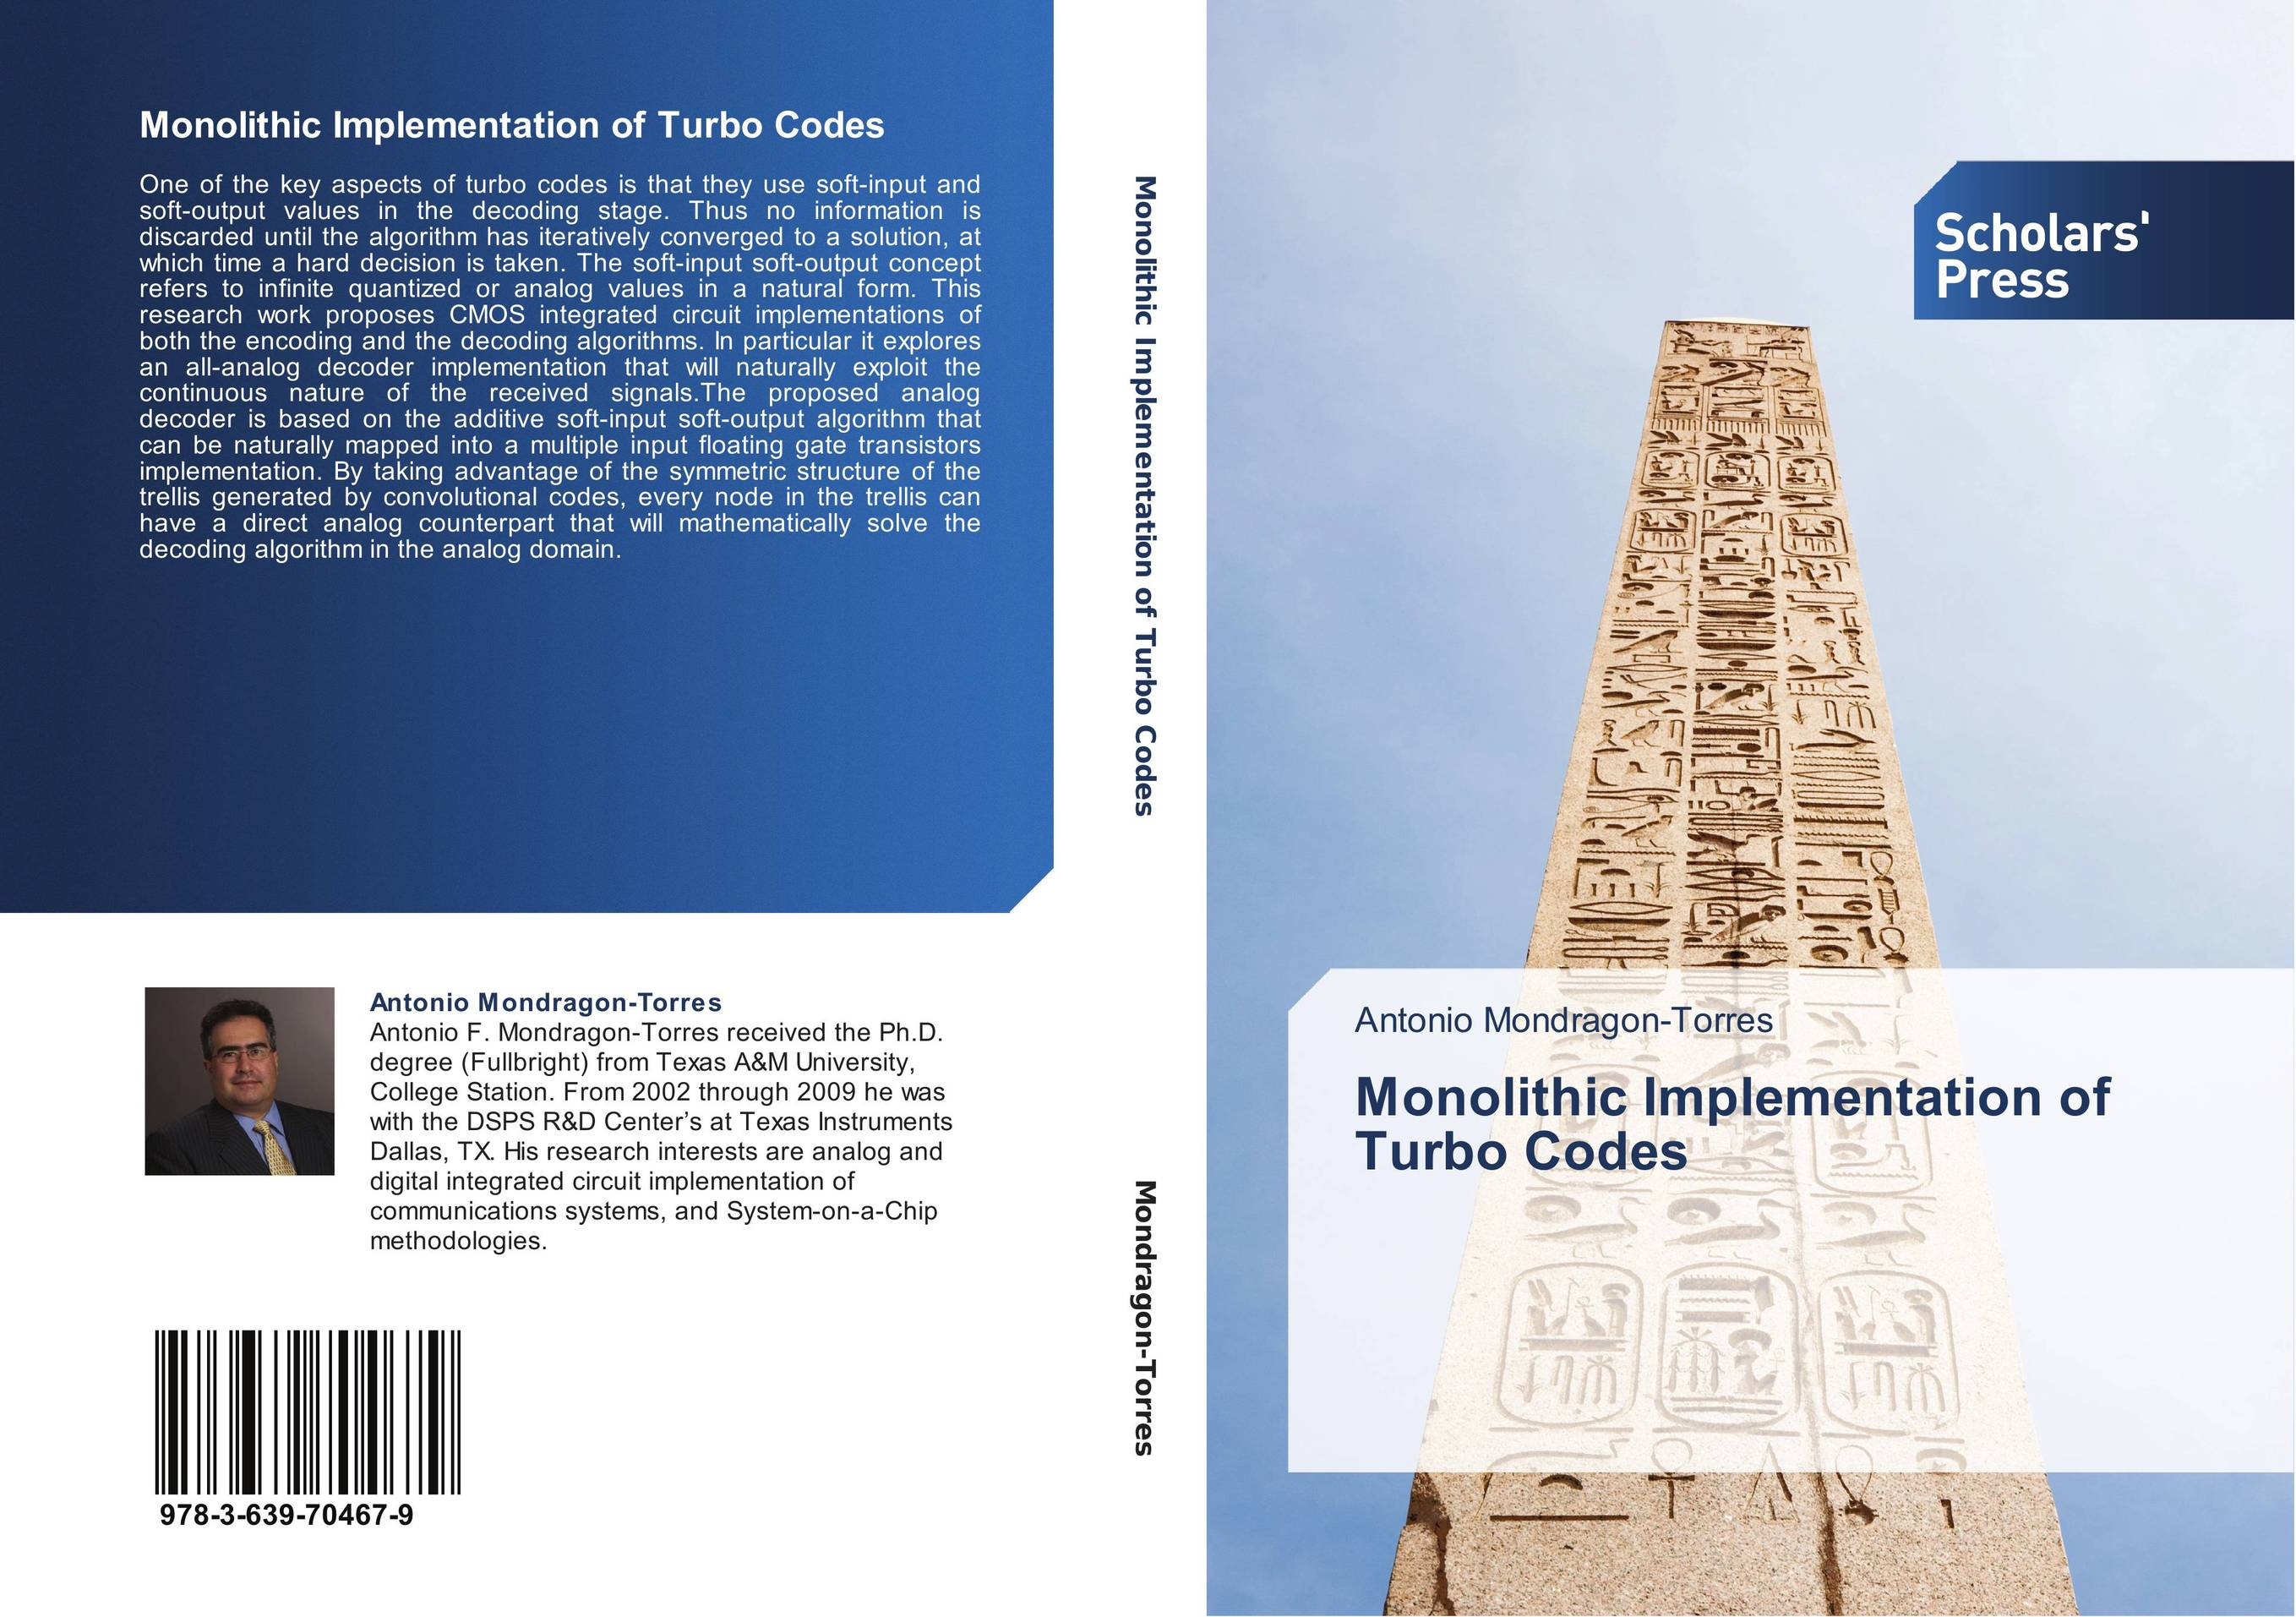 9783639704679 Monolithic Implementation of Turbo Codes Antonio MondragonTorre